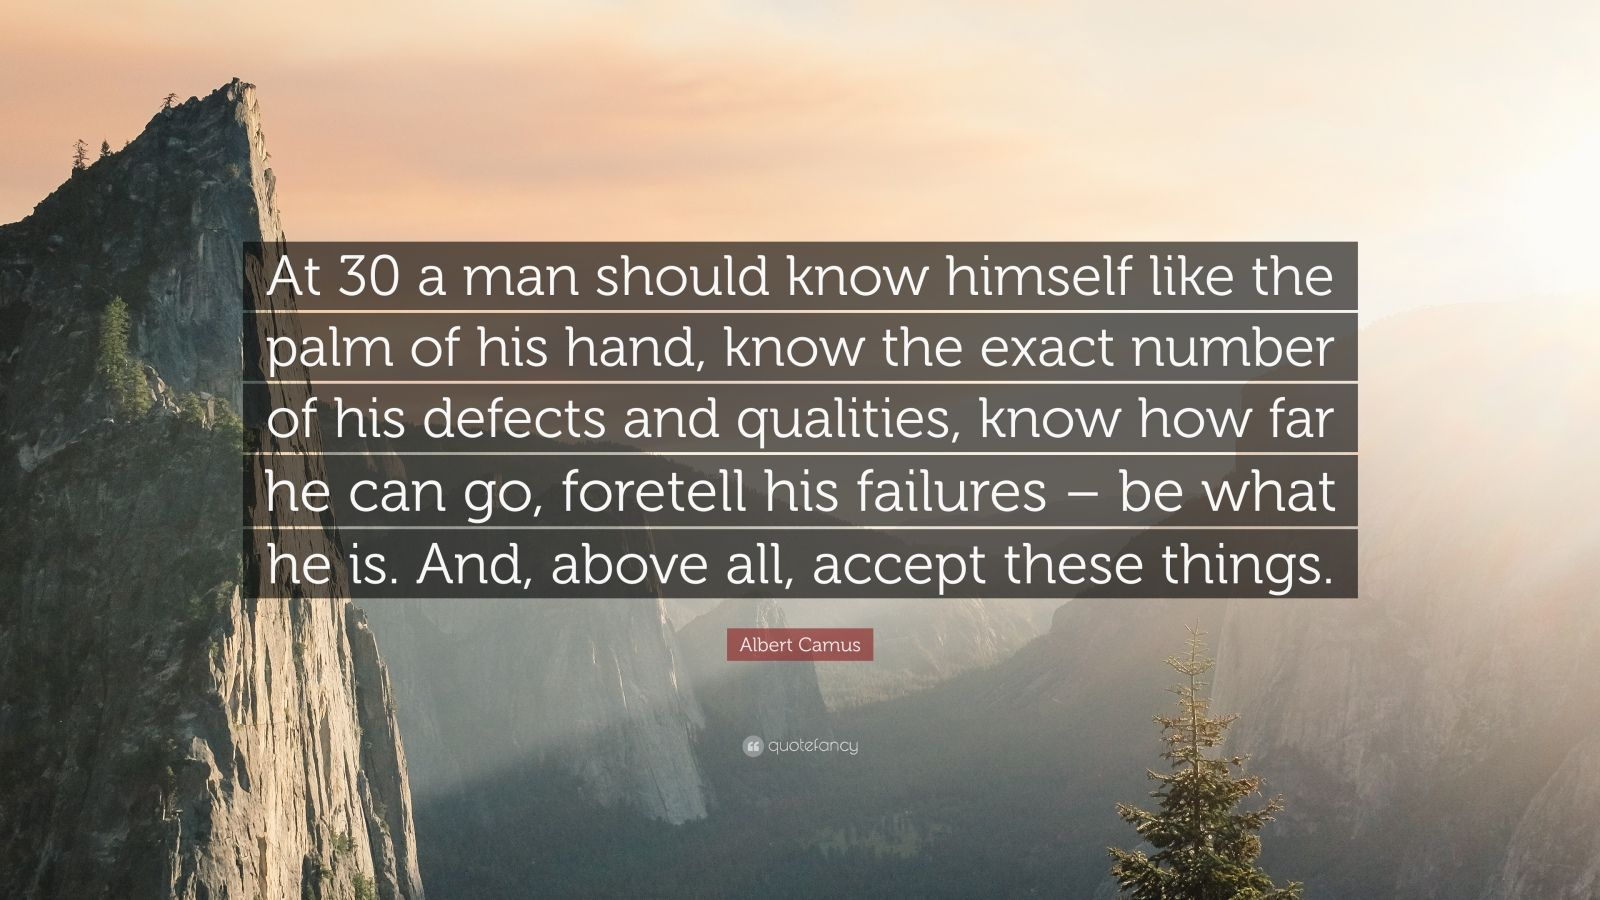 """Albert Camus Quote: """"At 30 a man should know himself like the palm of his hand, know the exact number of his defects and qualities, know how far he can go, foretell his failures – be what he is. And, above all, accept these things."""""""